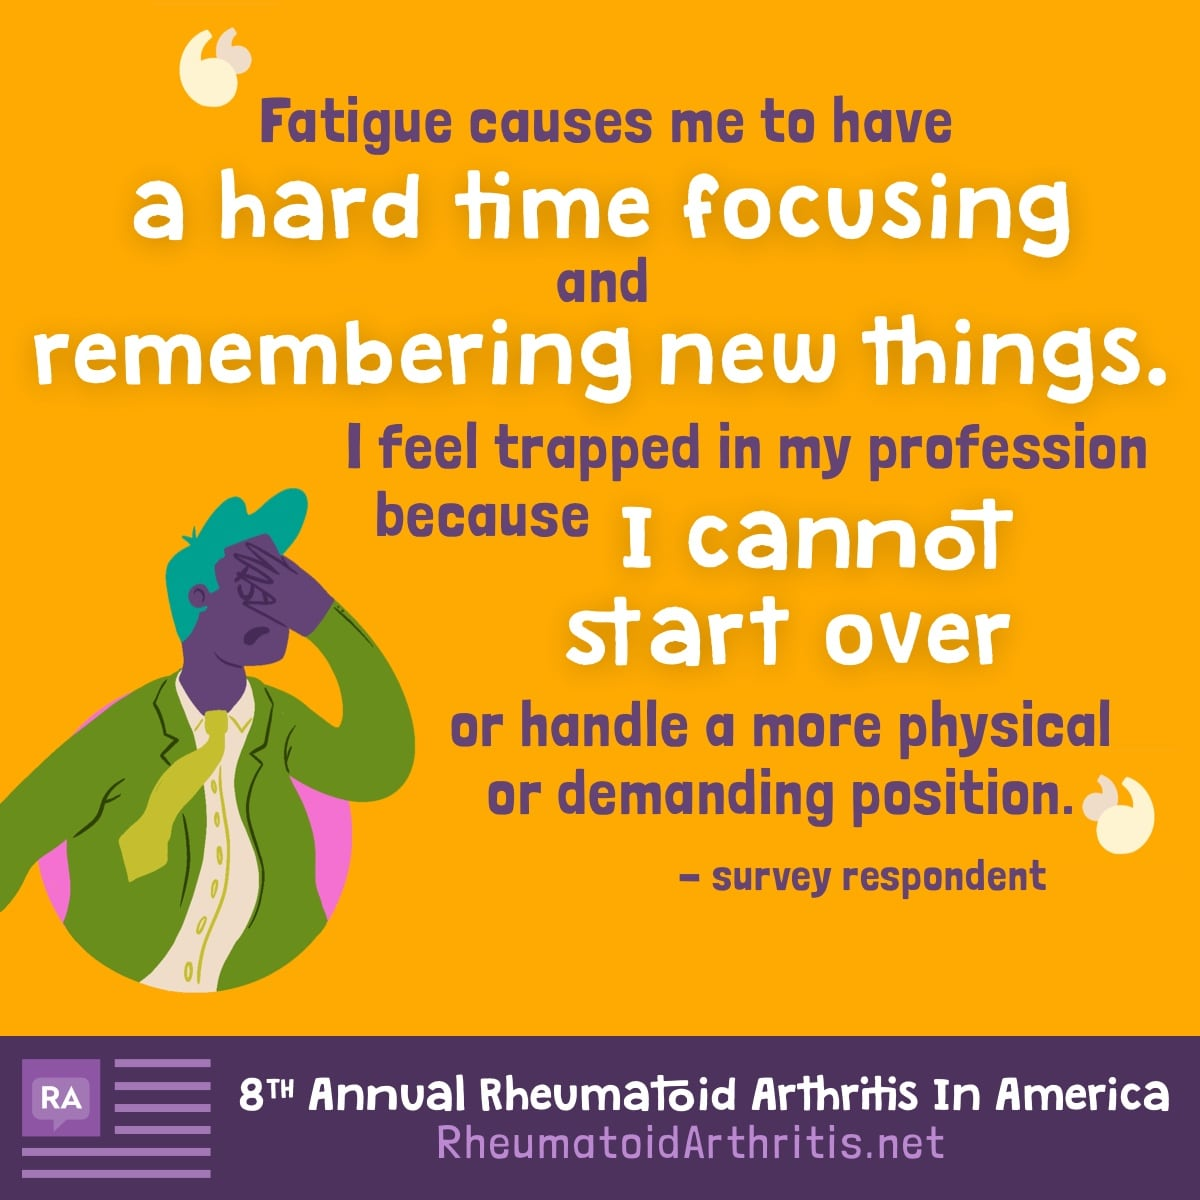 Quote describing impact of fatigue on work and career.